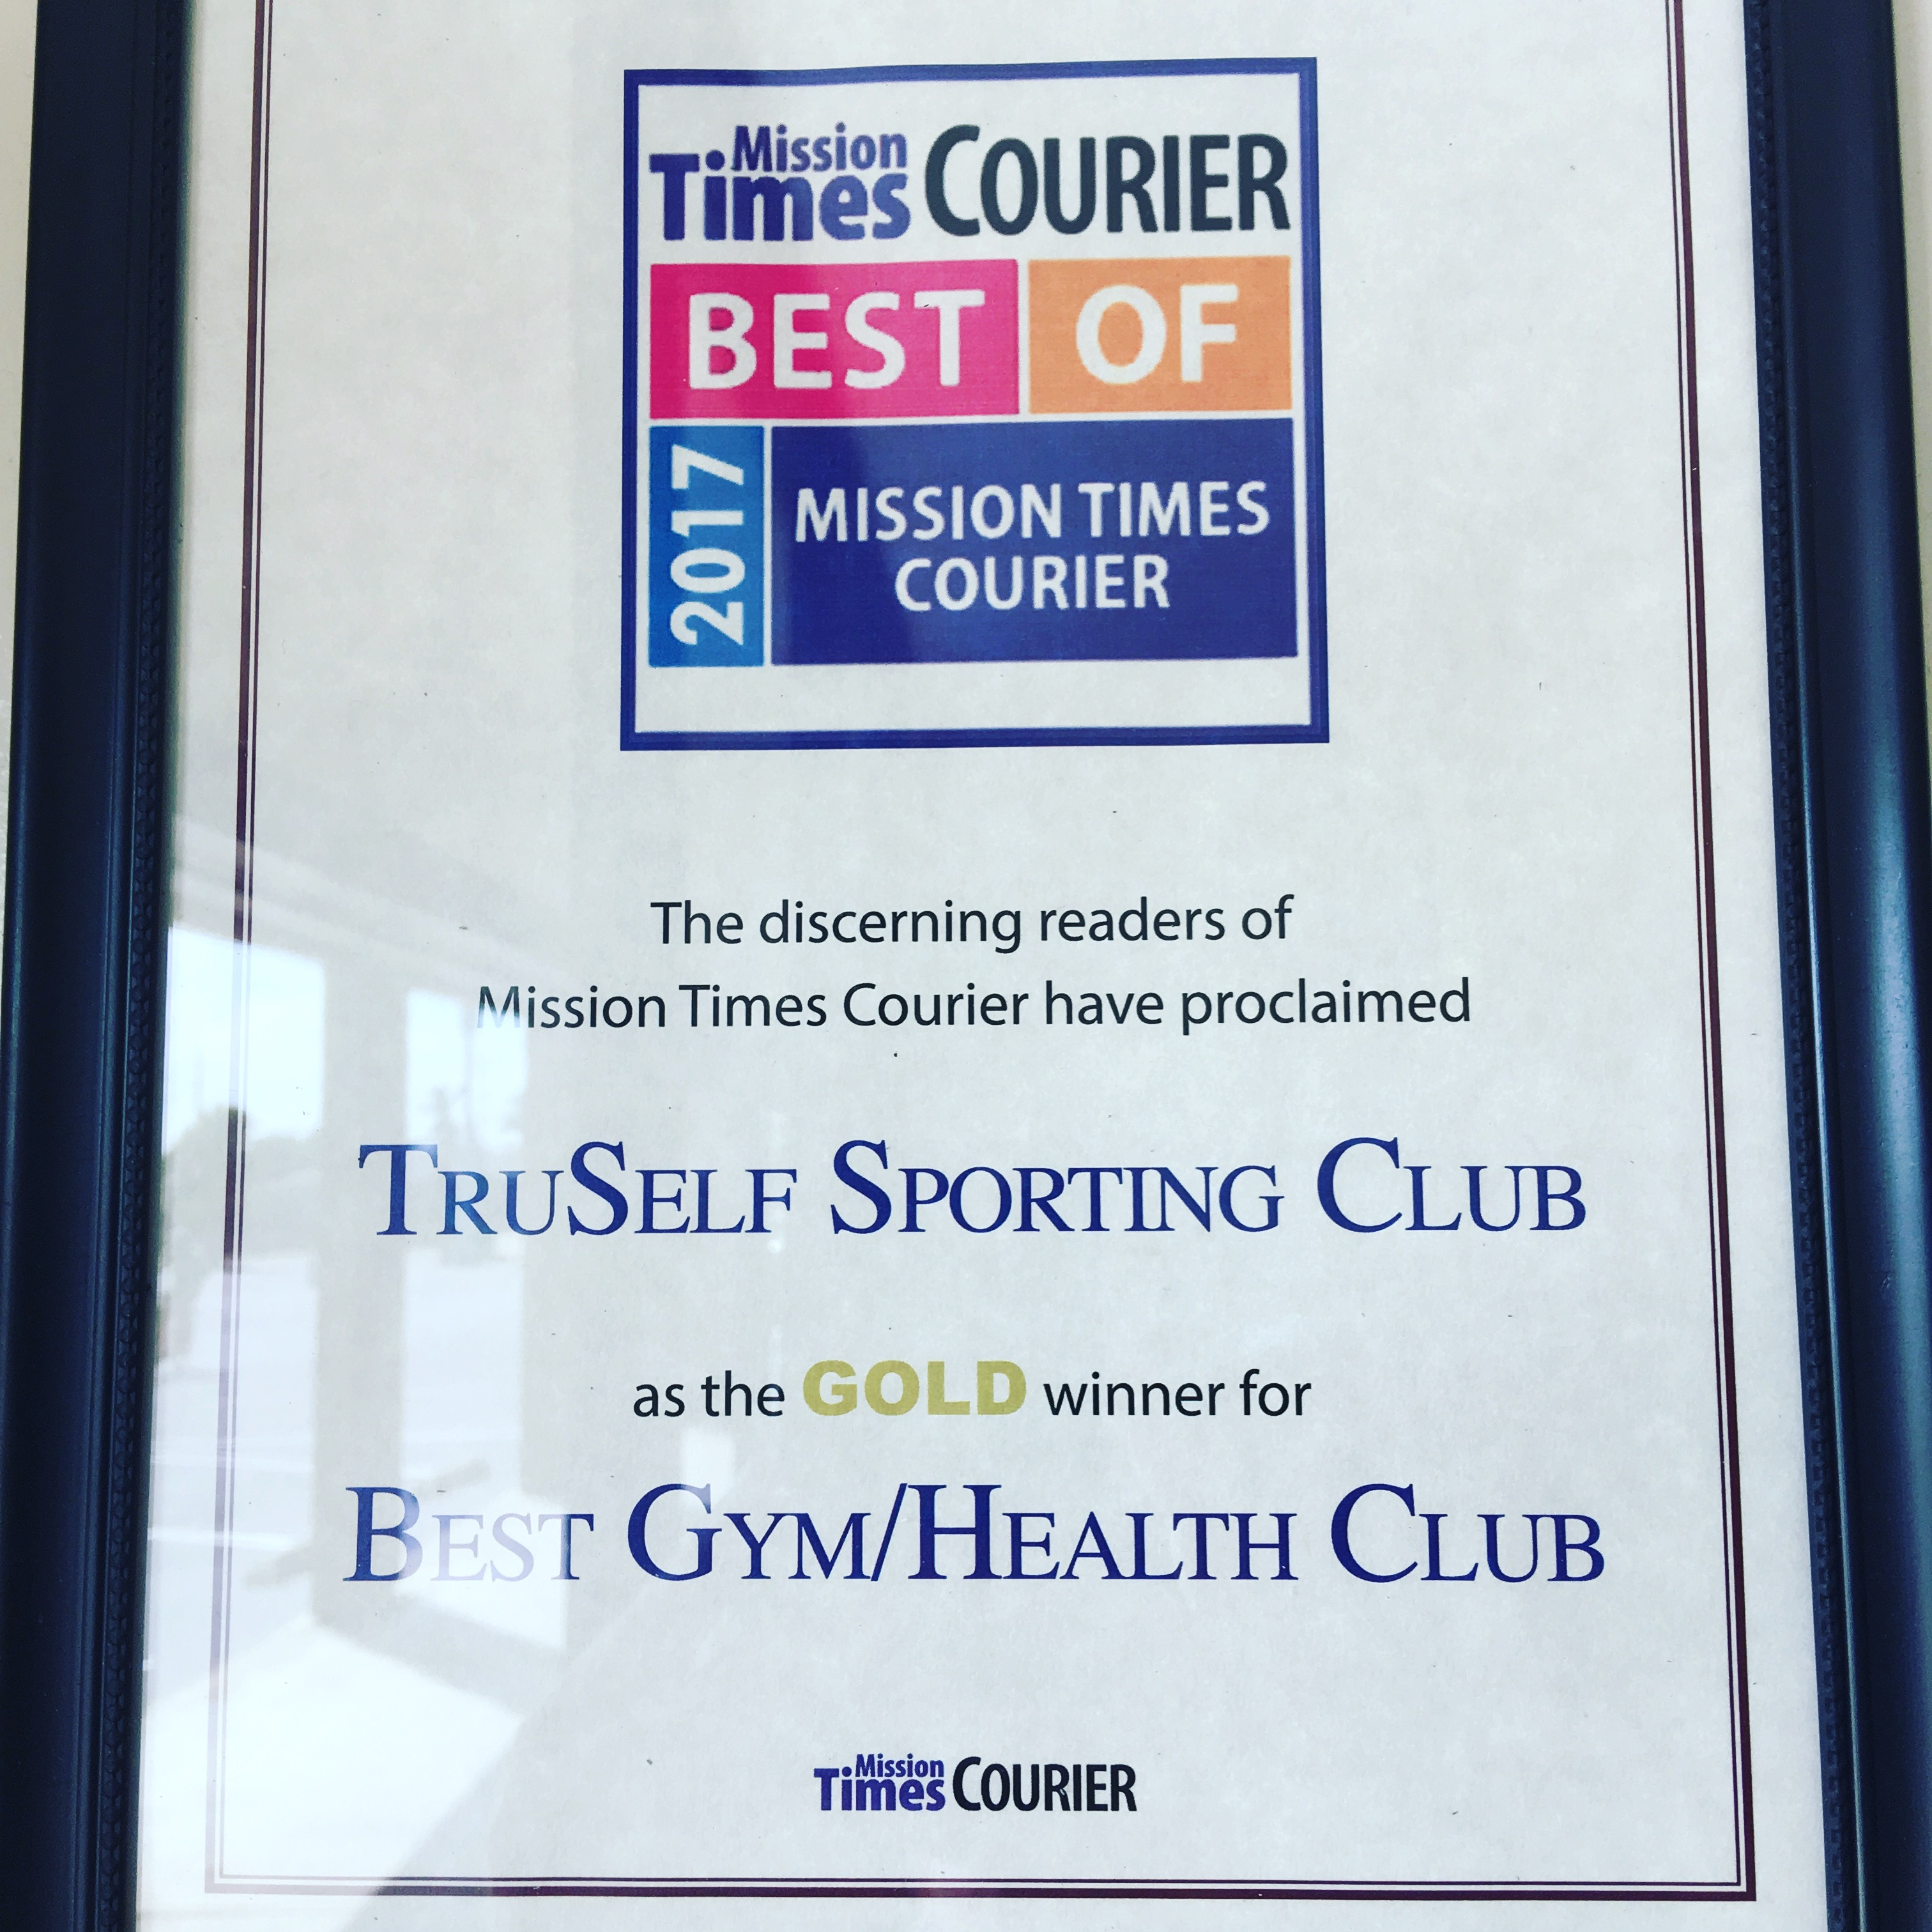 Membership Promotions Archives - TruSelfSportingClub com